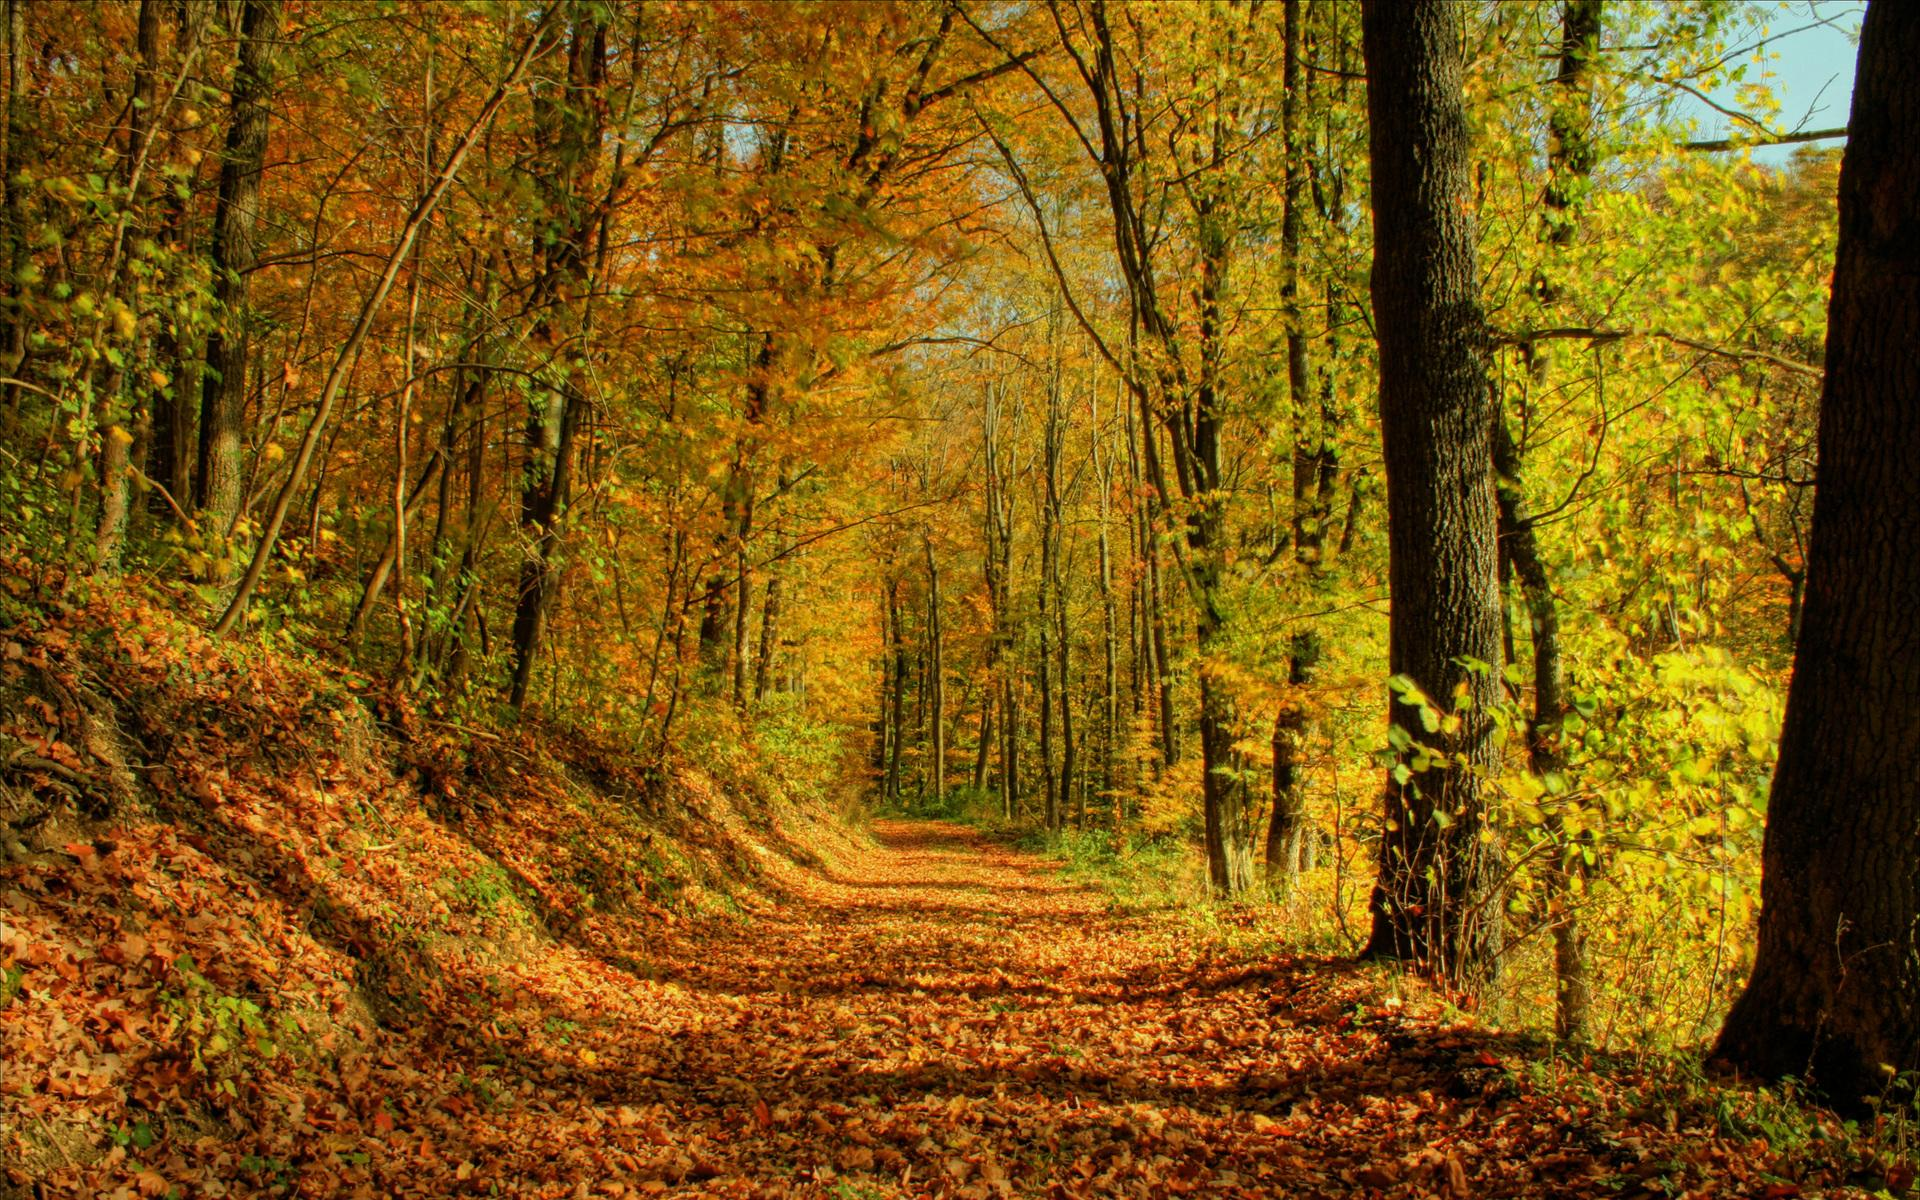 Fall Autumn Forrest Wallpaper LOLd Wallpaper   Funny Pictures 1920x1200